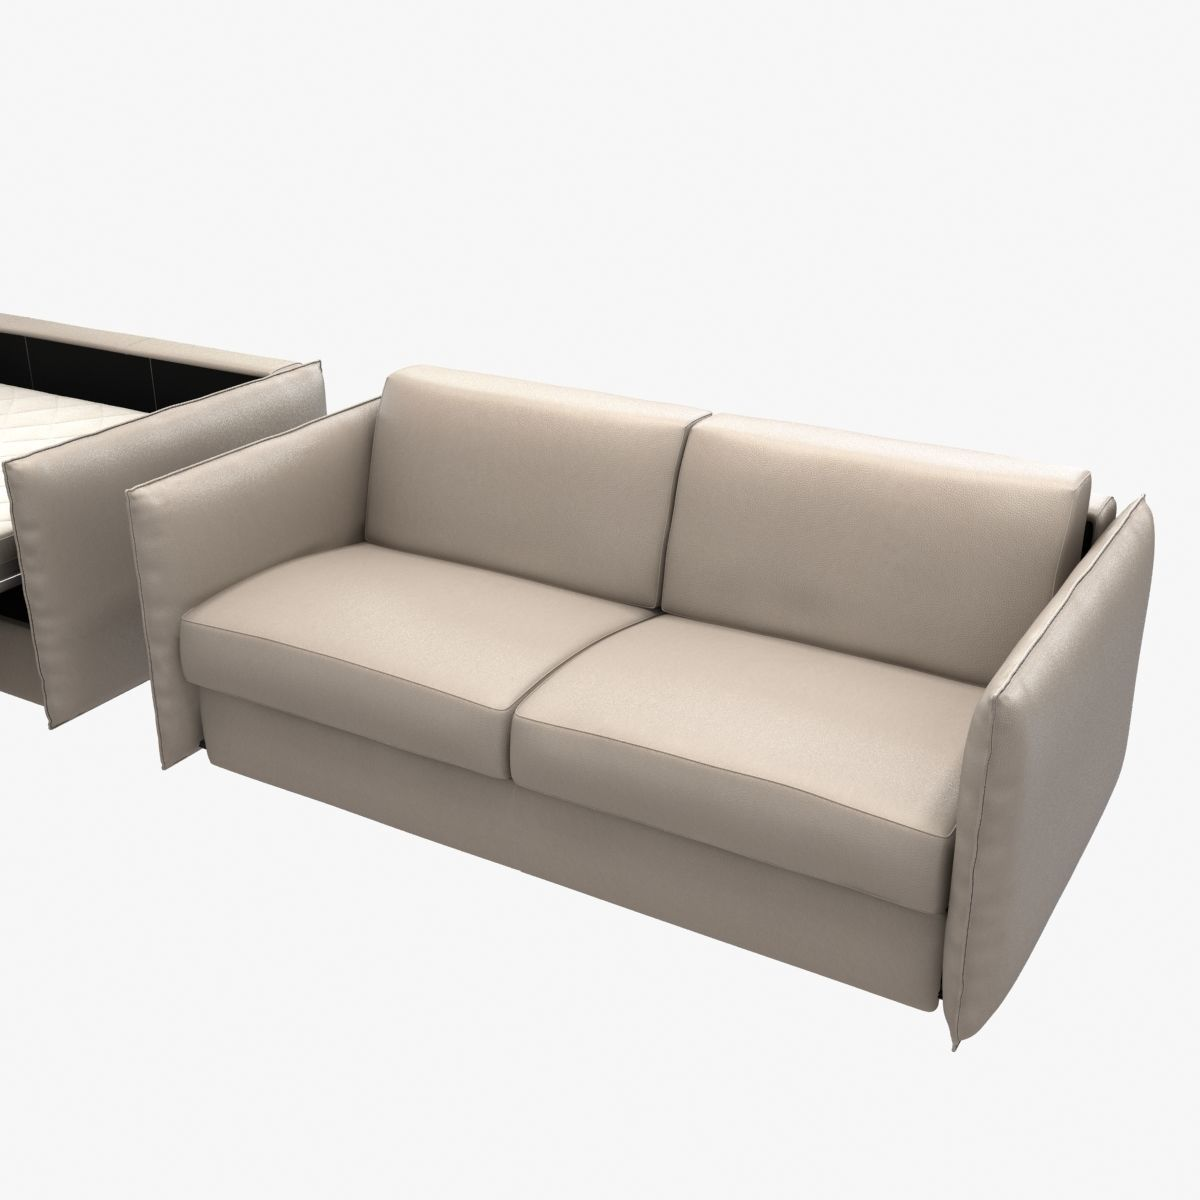 Ikea Pull Out Sofa  Balkarp Sofa Bed  Couch Fold Out Bed